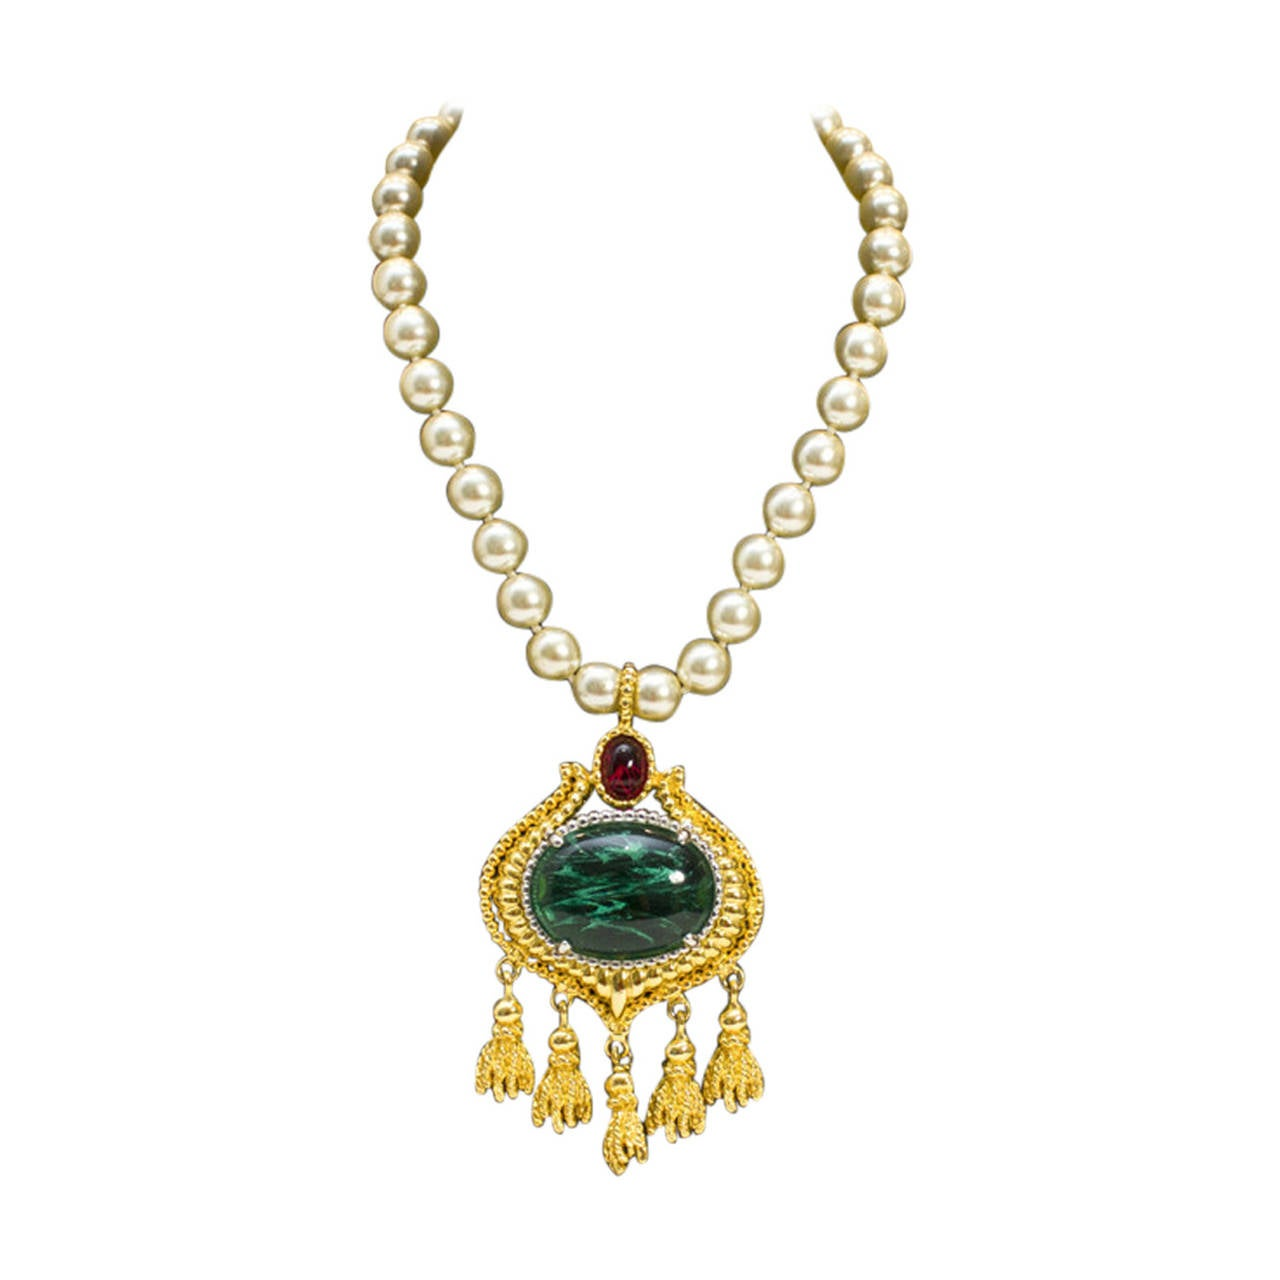 1980s Kenneth Jay Lane Faux Pearl & Cabochon Emerald Necklace For Sale